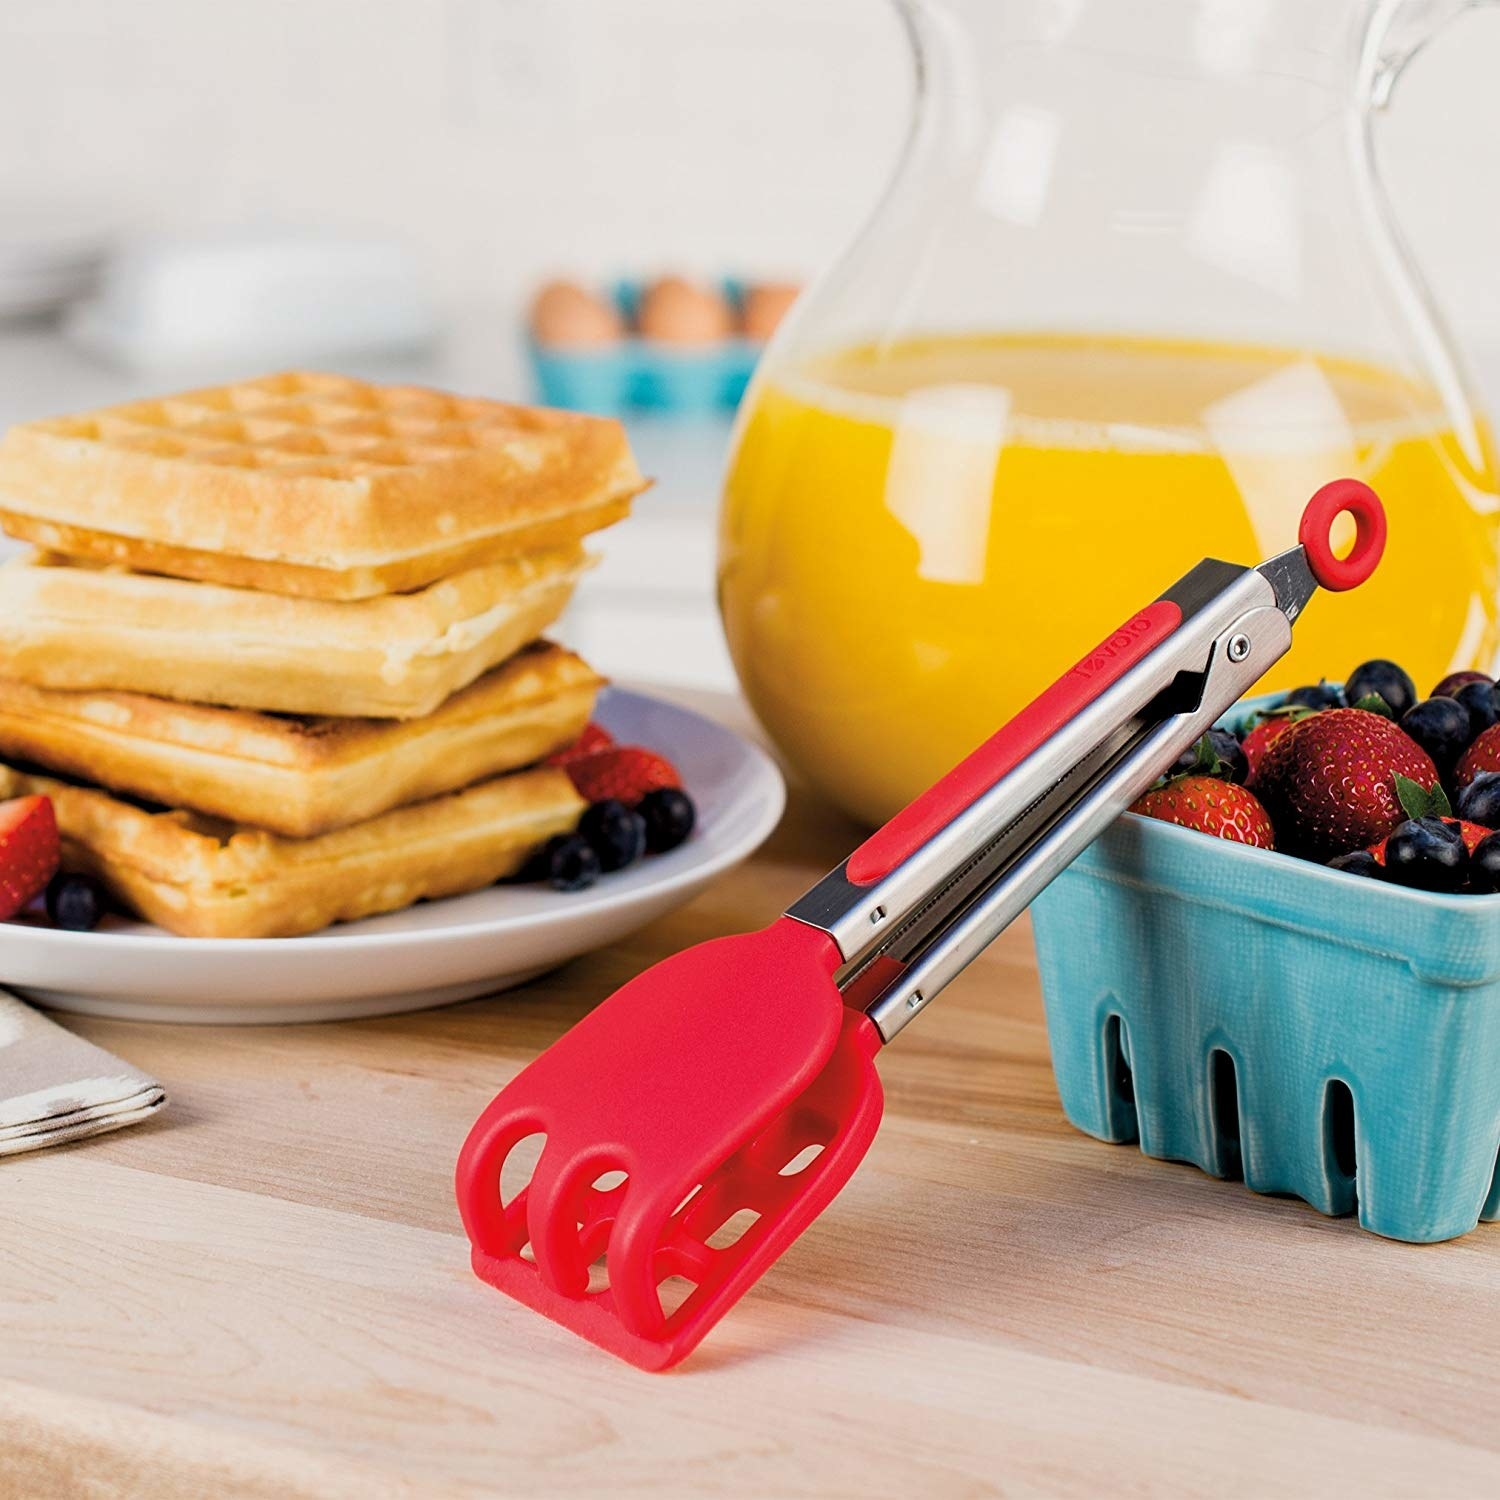 A pair of waffle tongs leaning against a carton of berries in front of a stack of waffles